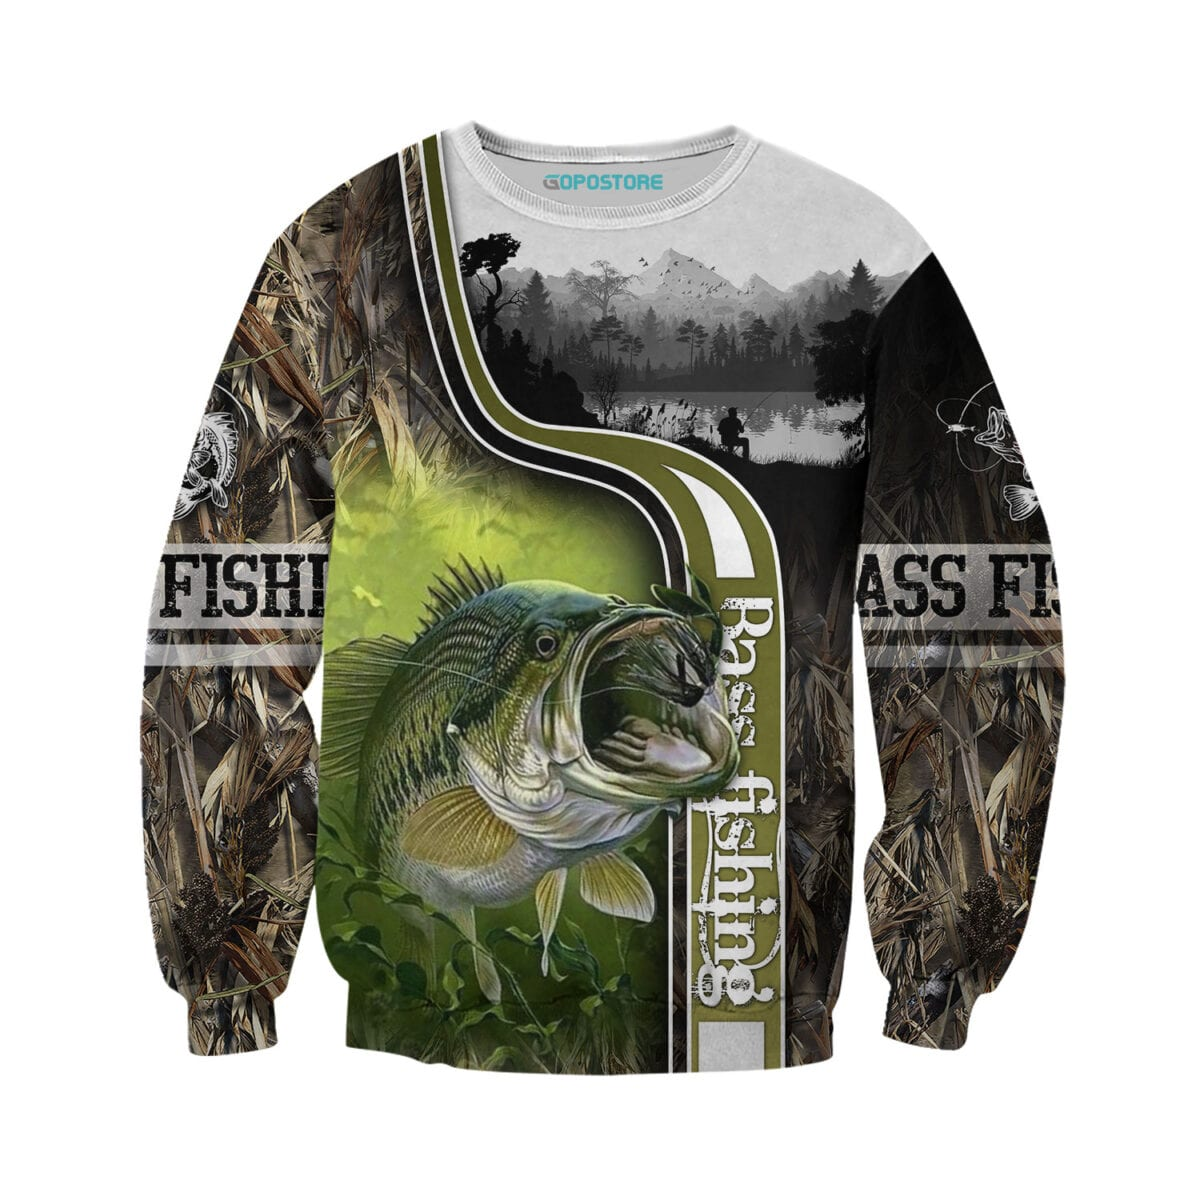 Bass Fishing 3D All Over Printed Shirts for Men and Women 7